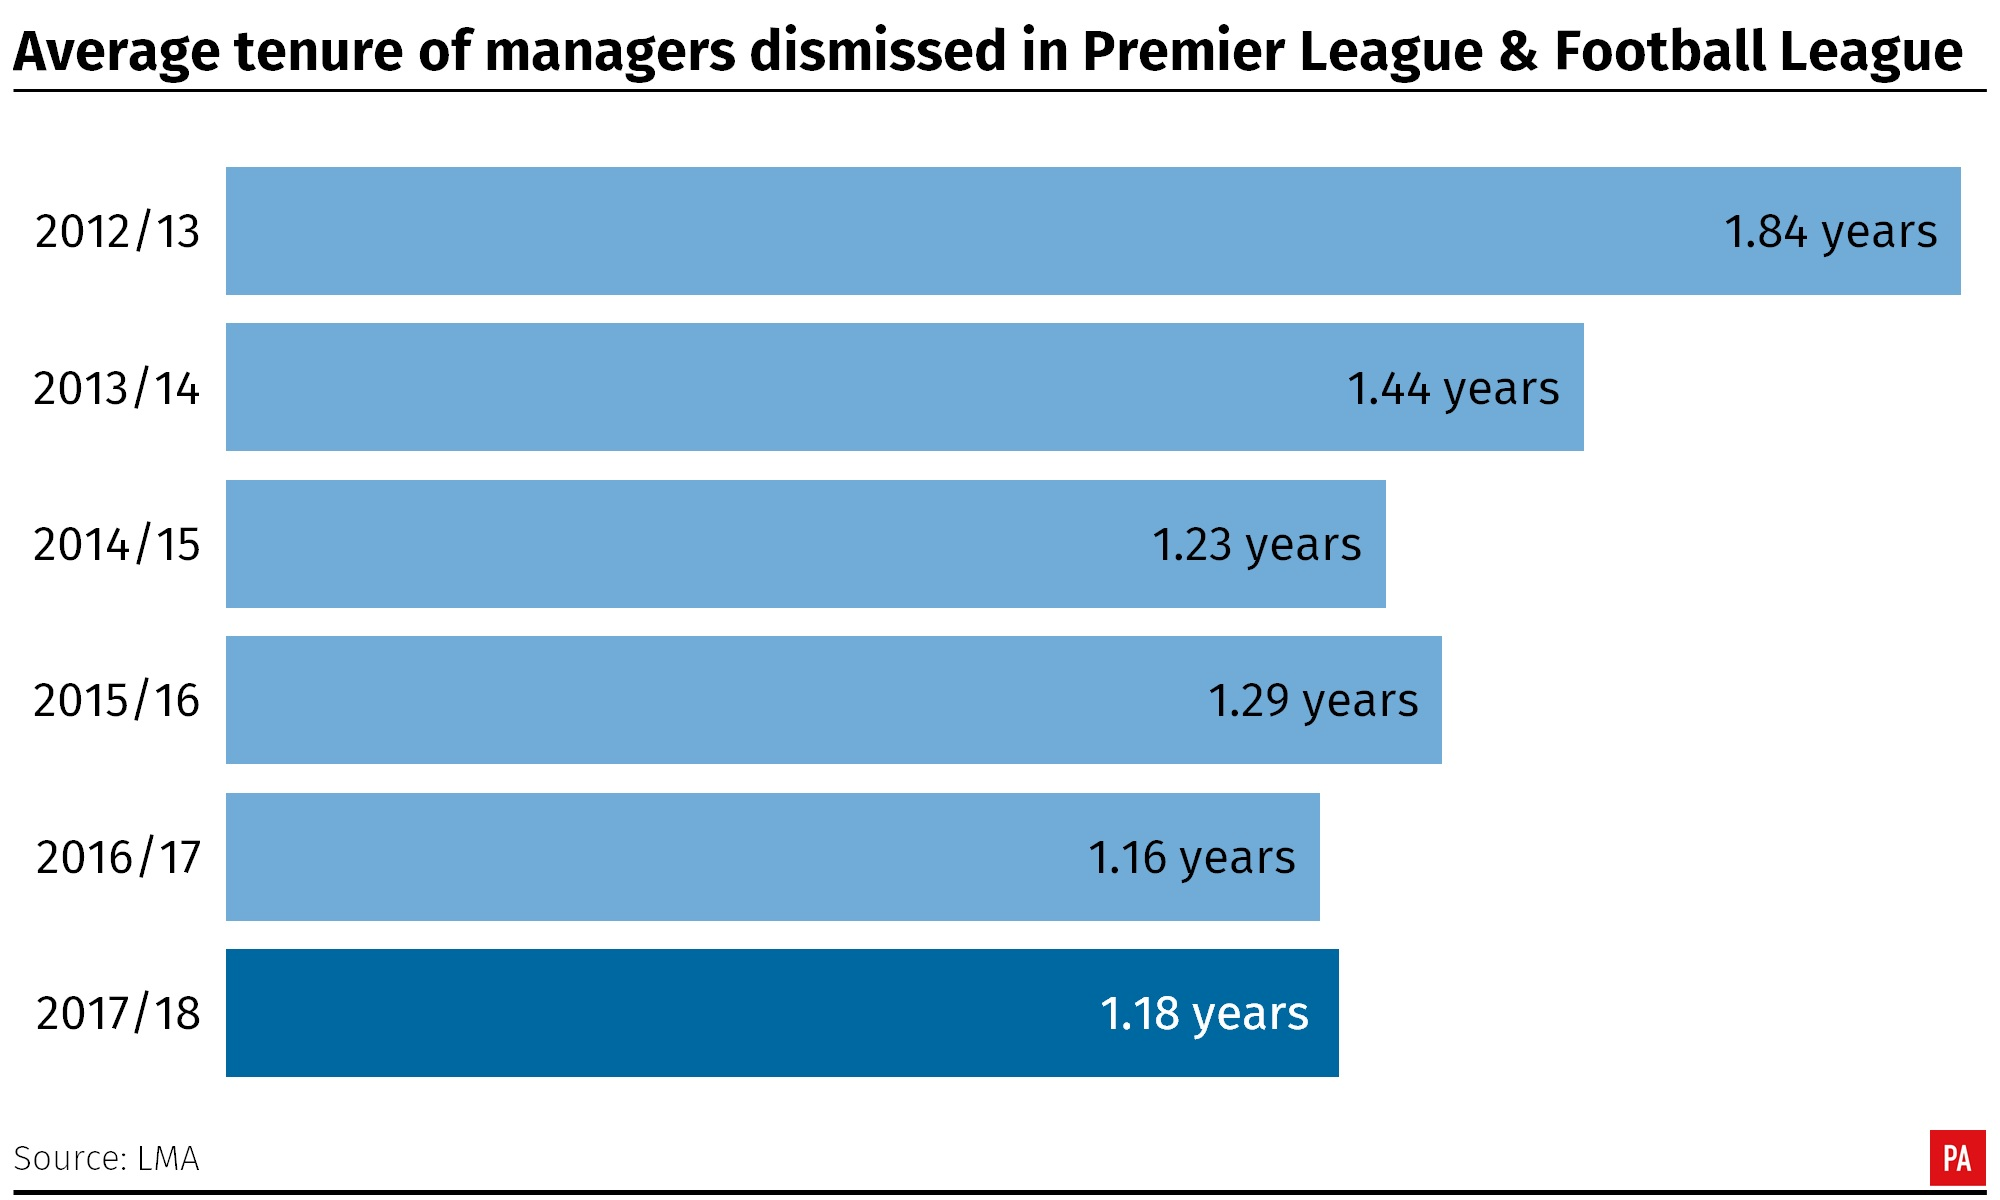 Average tenure of managers dismissed in the Premier League and Football League